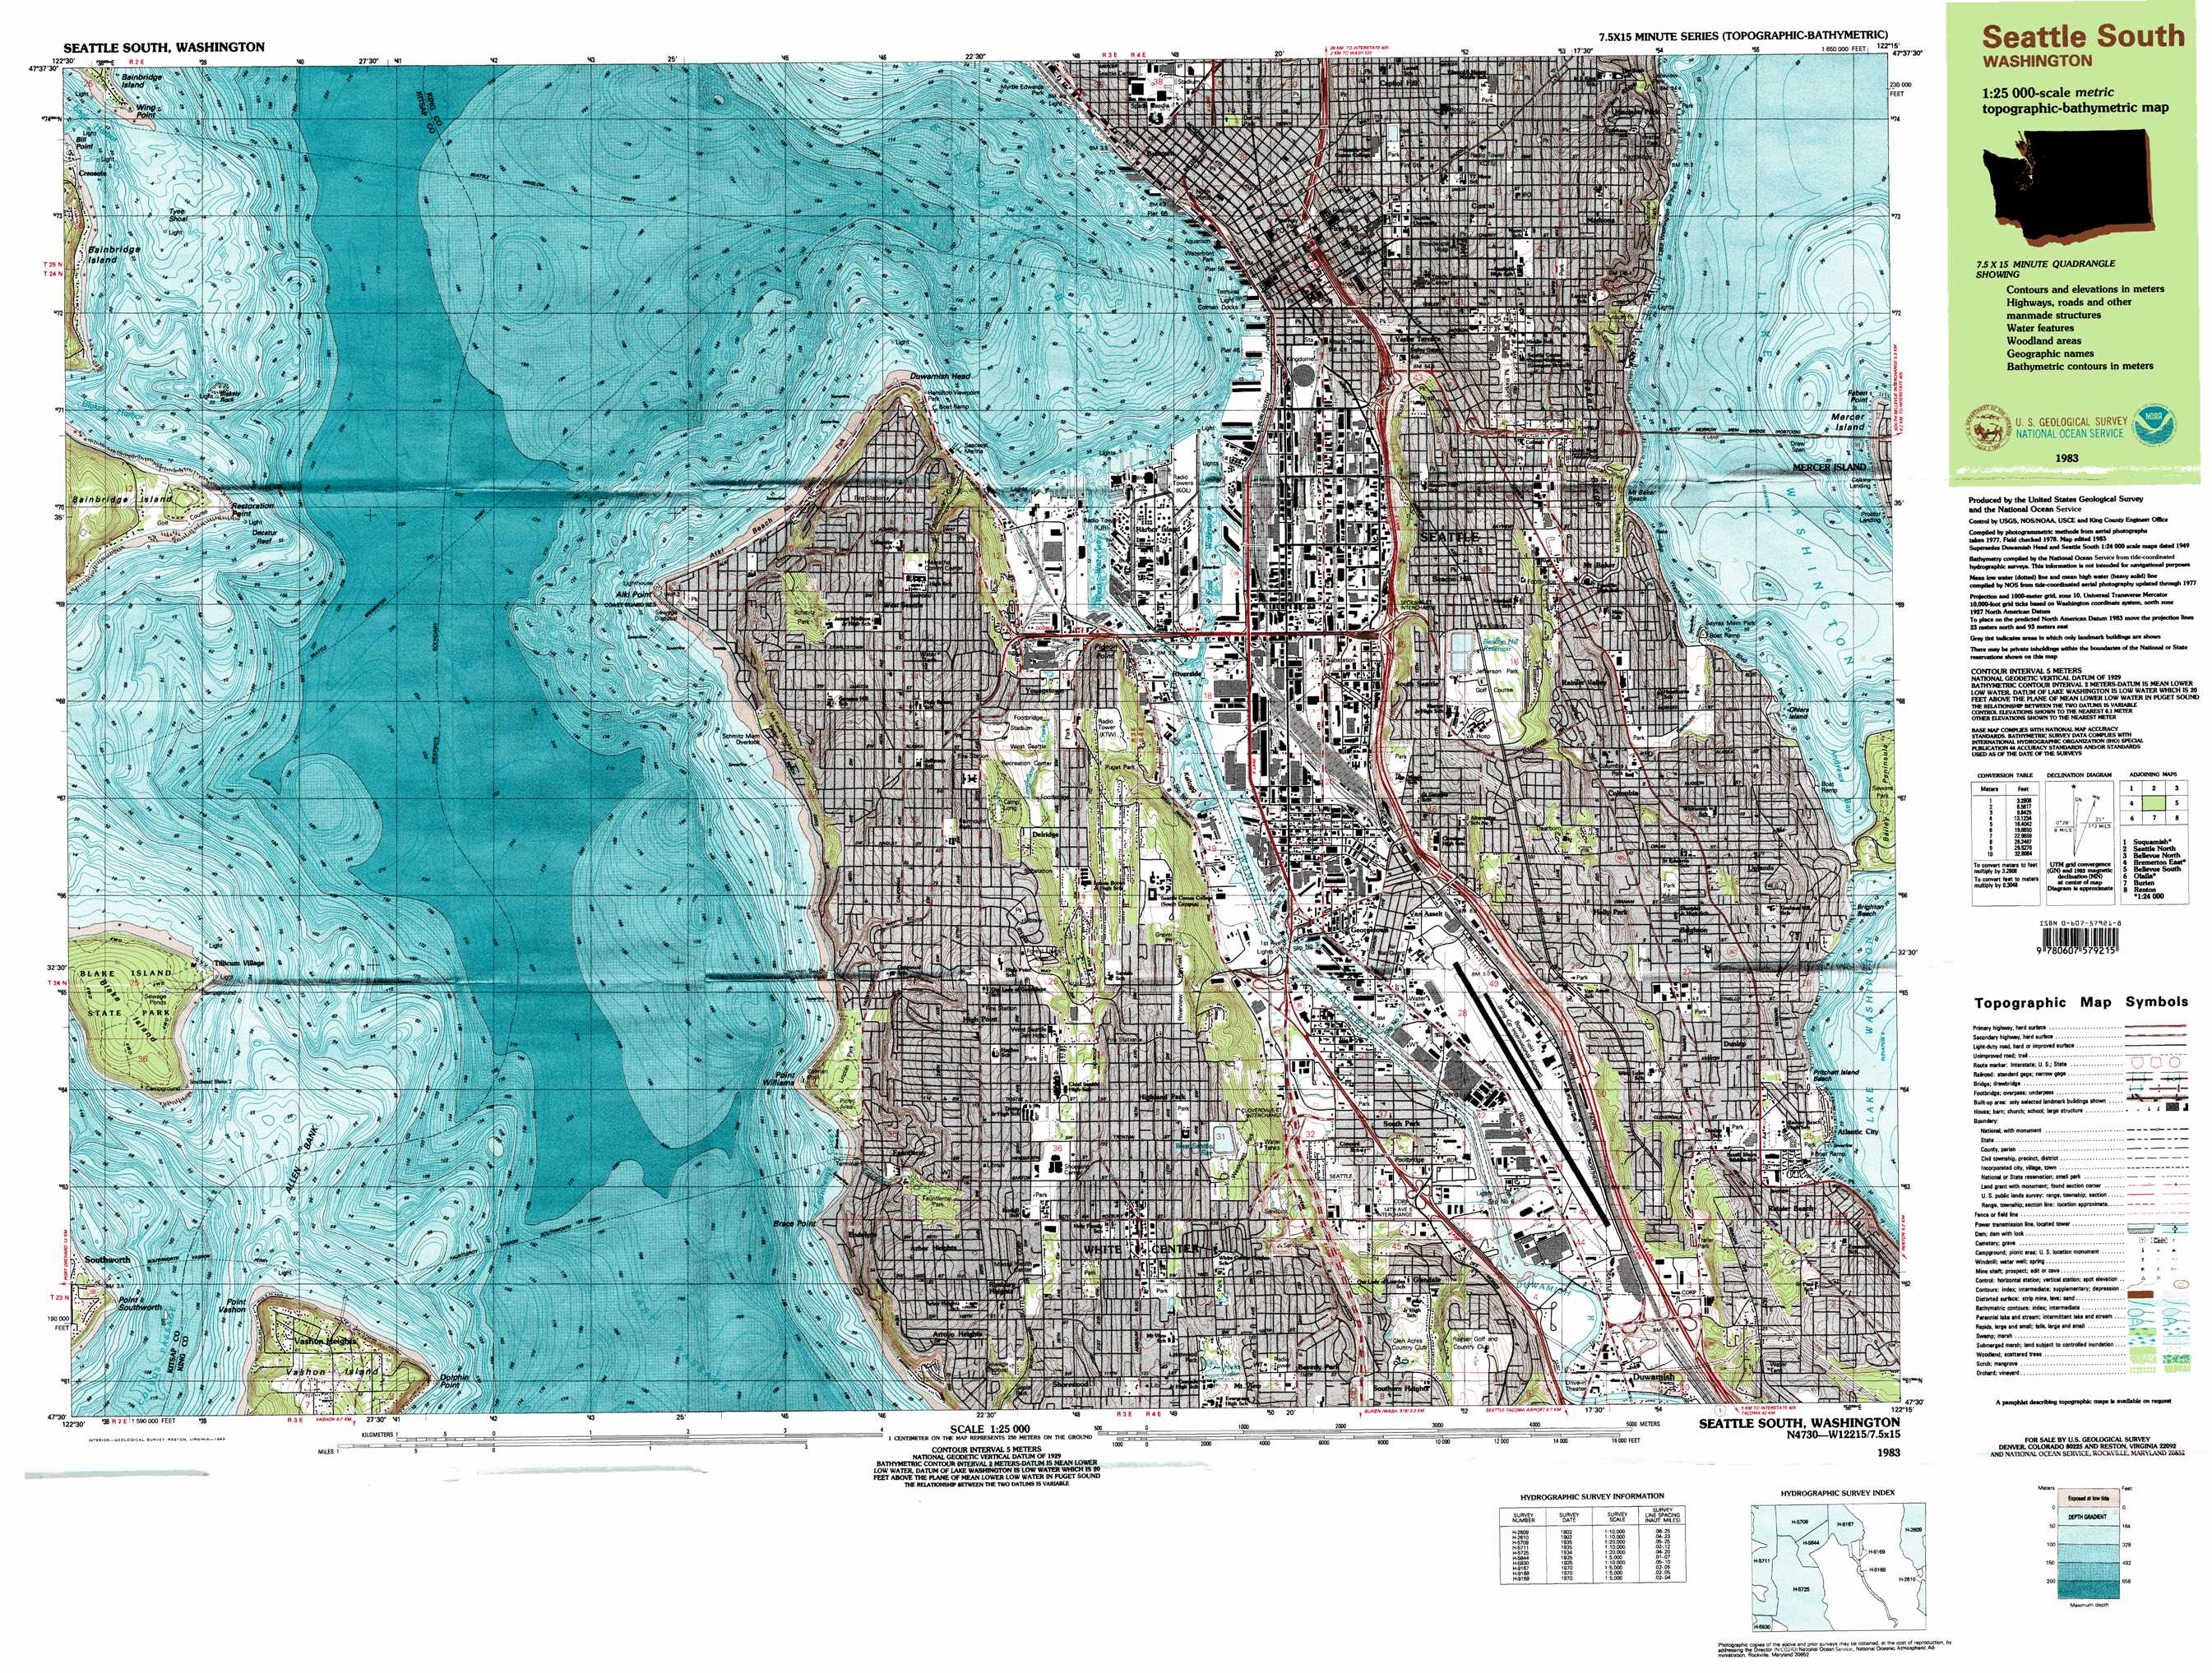 Seattle South topographic map WA USGS Topo Quad 47122e3